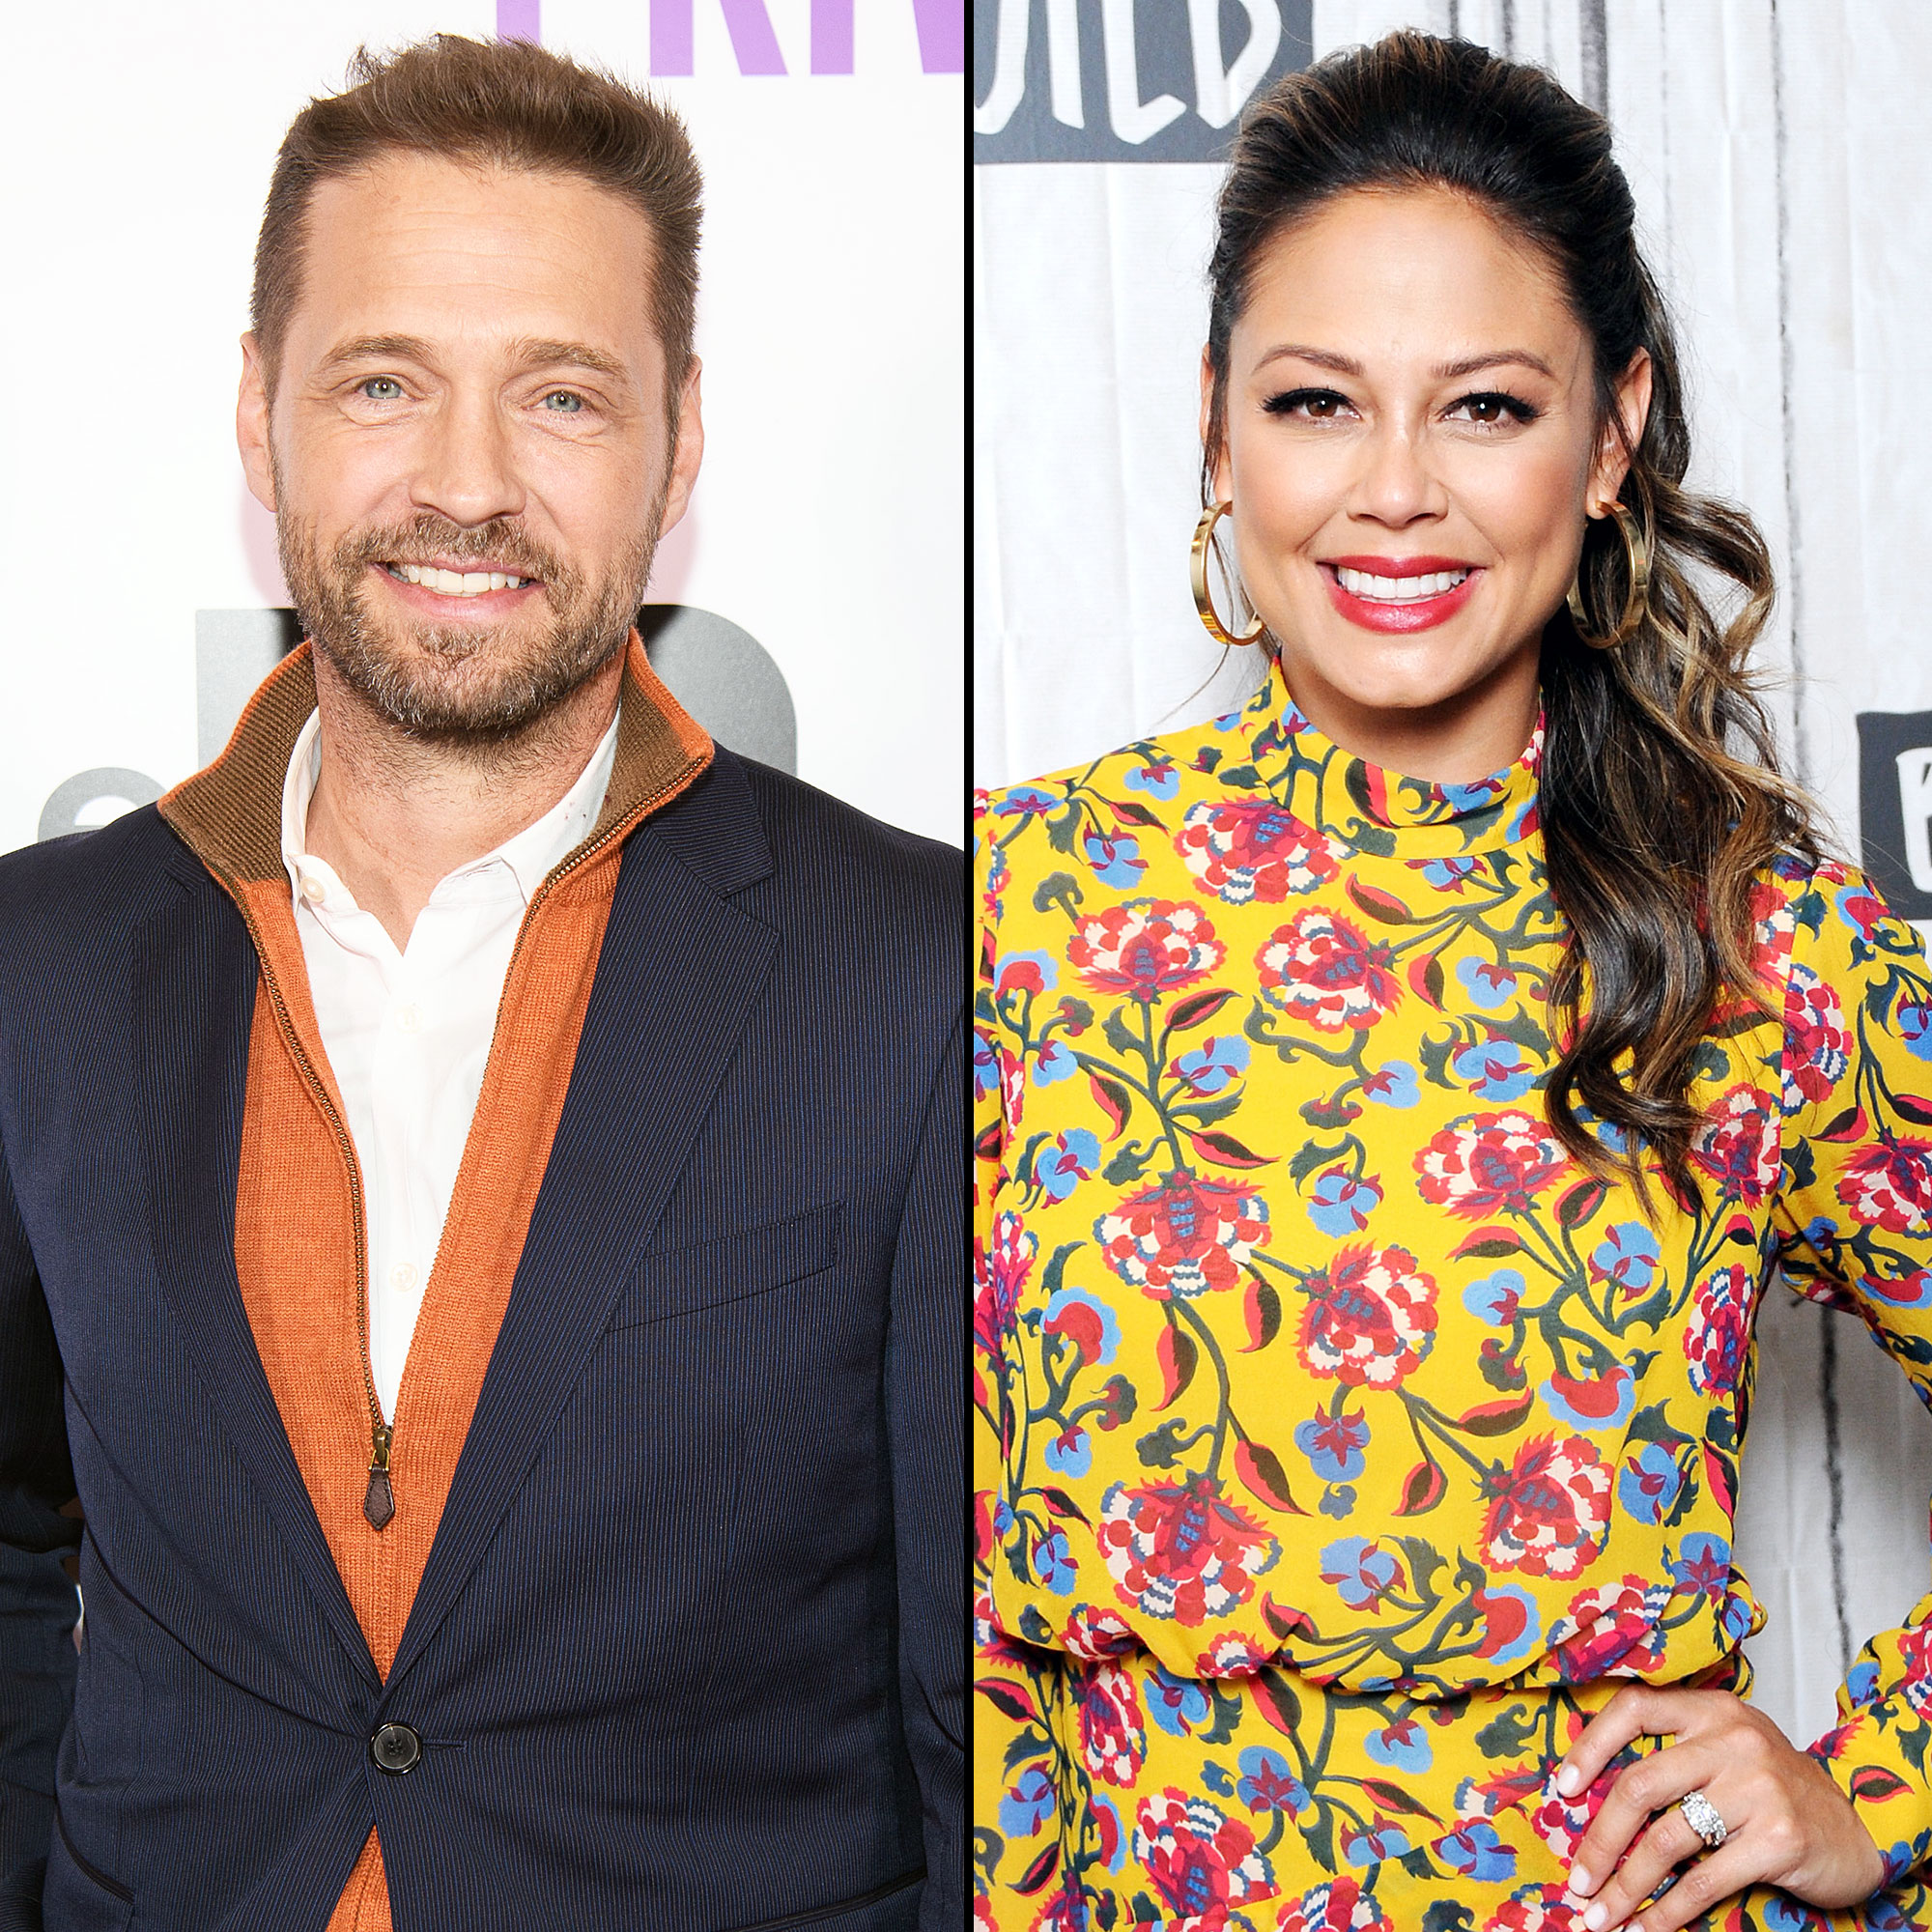 Vanessa Lachey Joins 'BH90210' as Jason Priestley's Wife